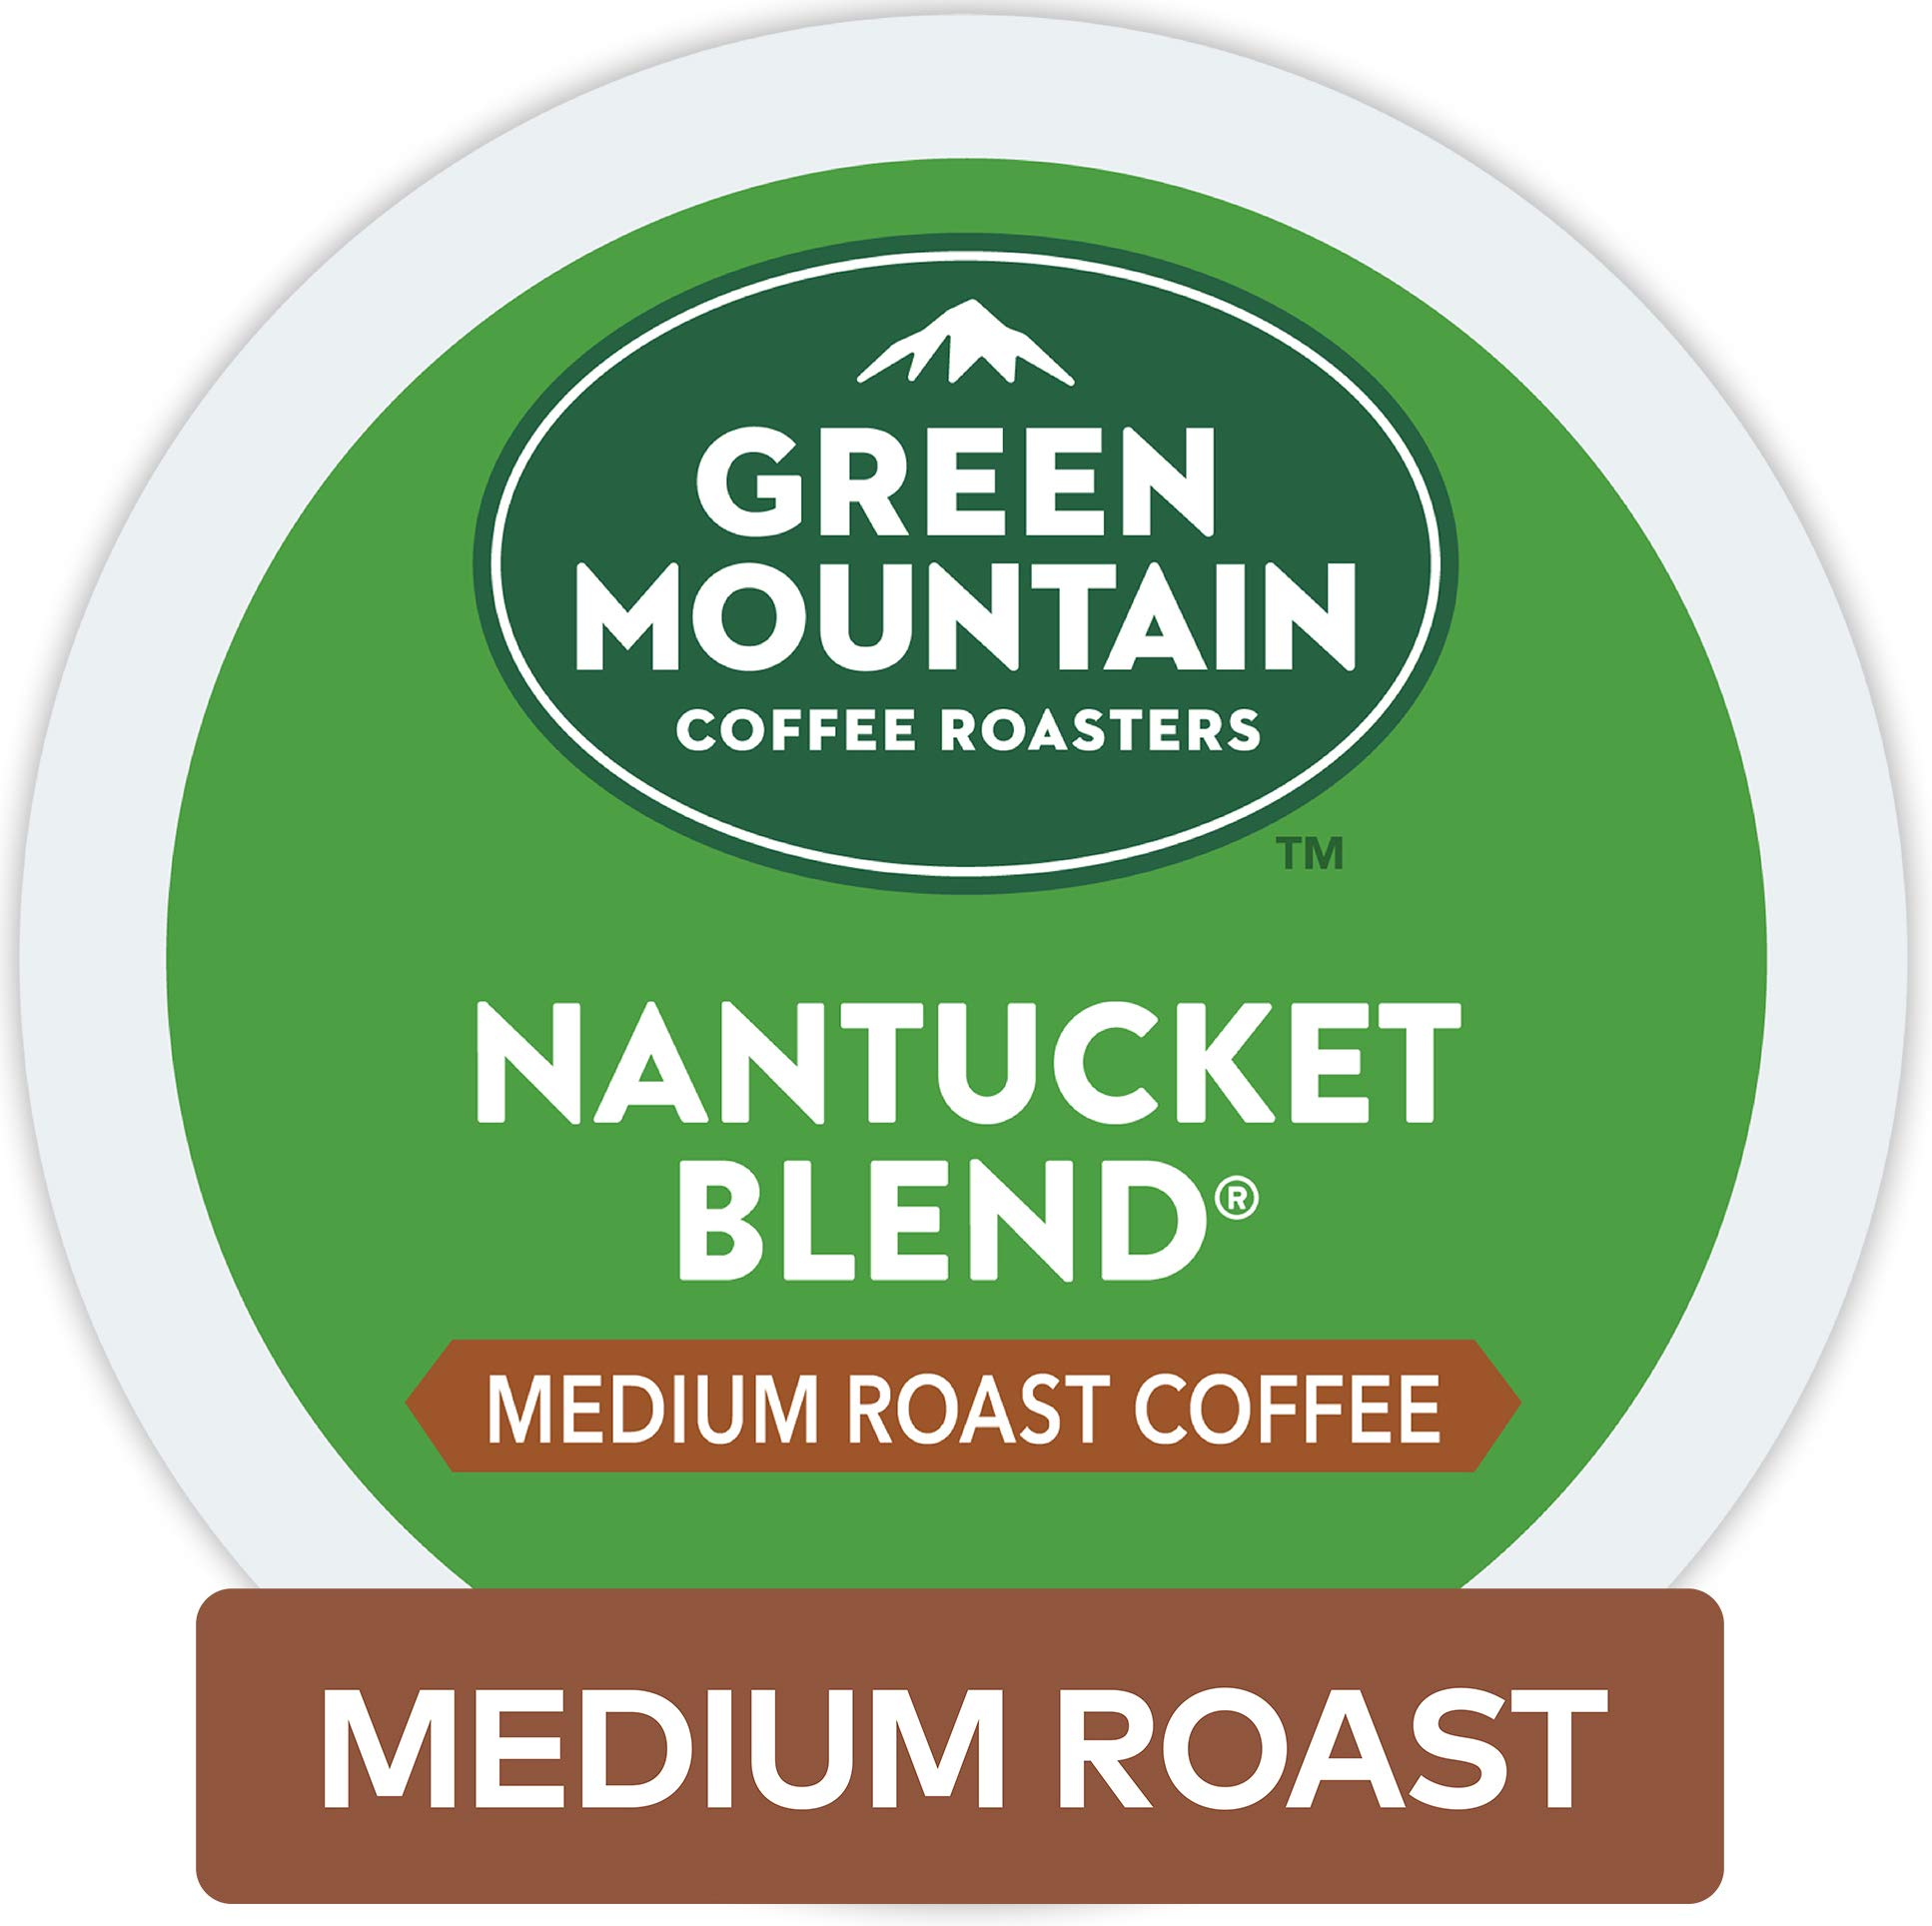 Green Mountain Coffee Roasters Nantucket Blend Keurig Single-Serve K-Cup Pods, Medium Roast Coffee, 72 Count by Green Mountain Coffee Roasters